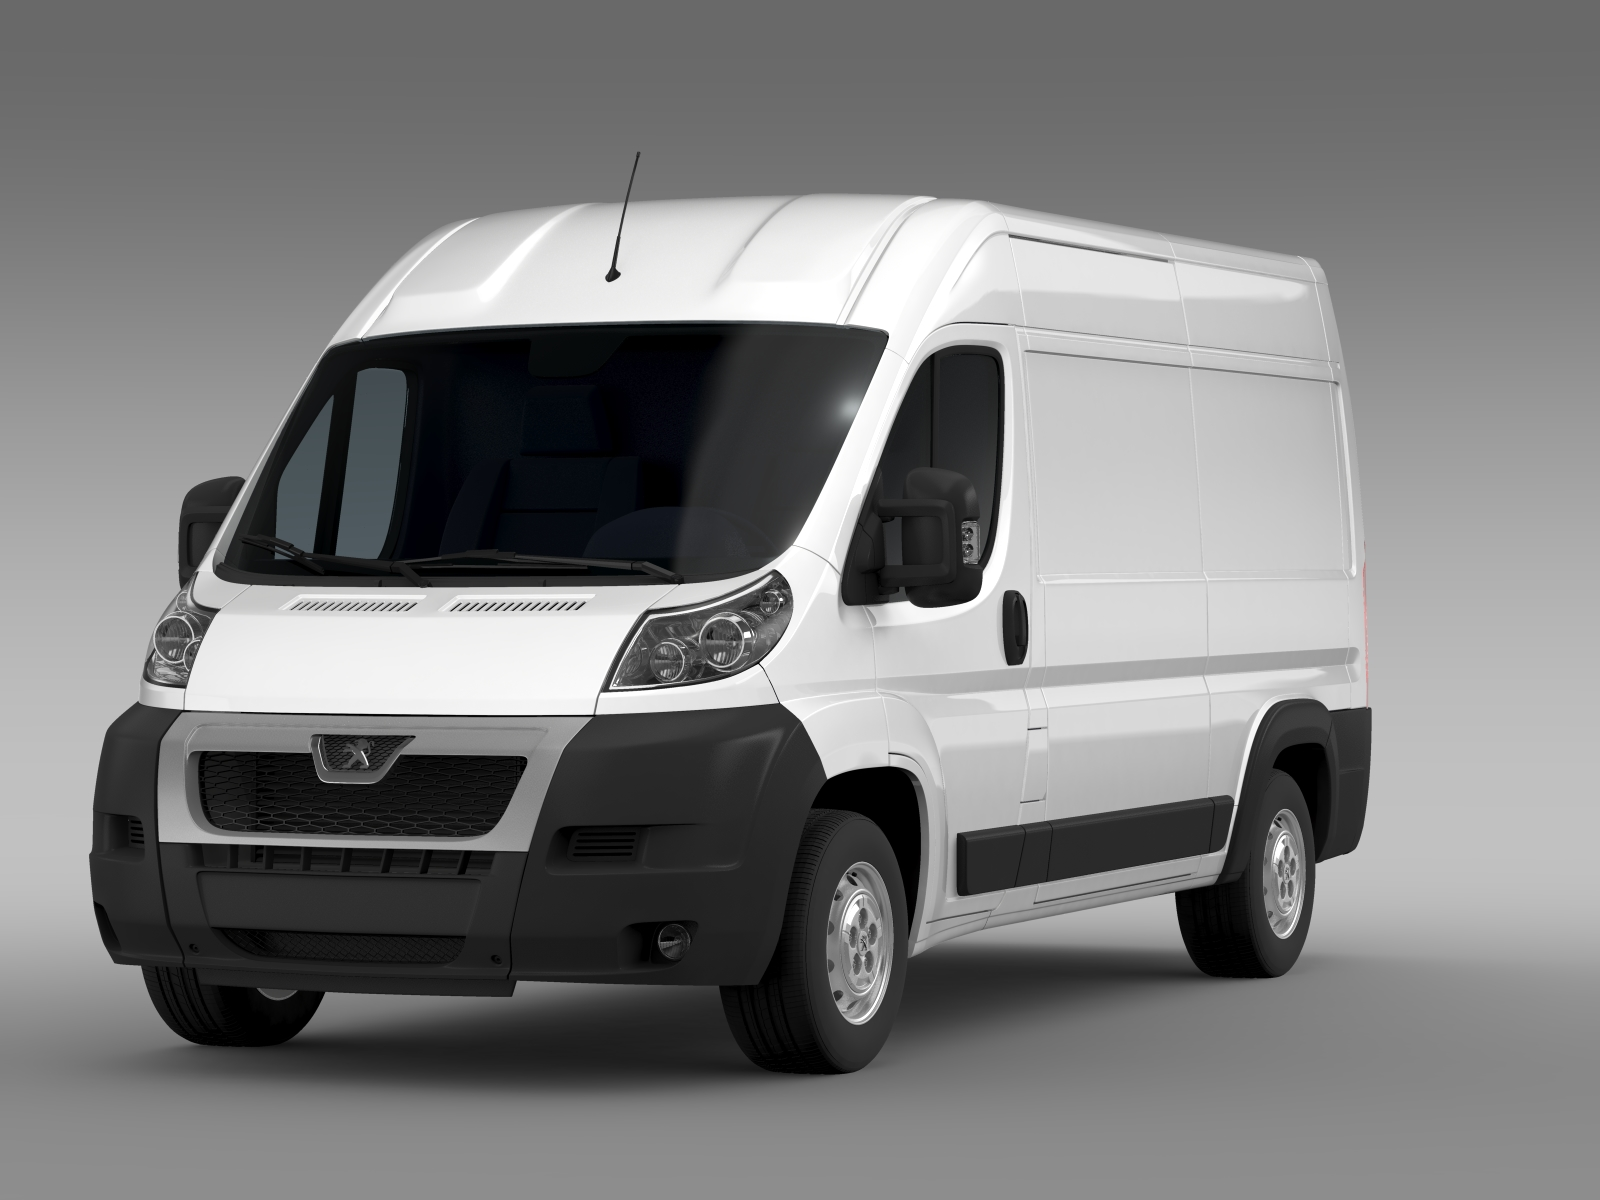 peugeot boxer van l2h2 2006 2014 3d model buy peugeot boxer van l2h2 2006 2014 3d model. Black Bedroom Furniture Sets. Home Design Ideas